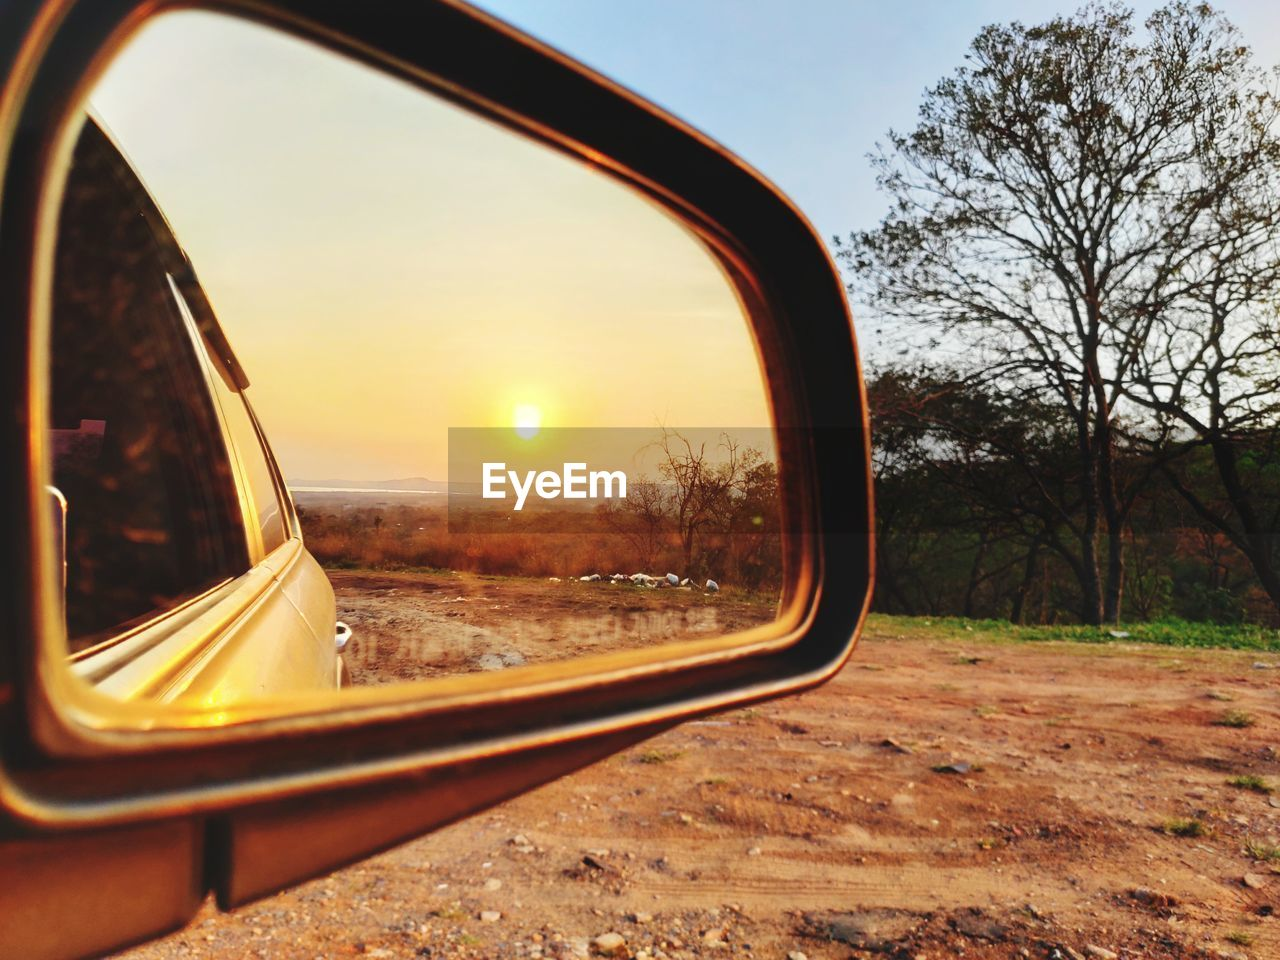 Reflection of trees and sky on side-view mirror during sunset